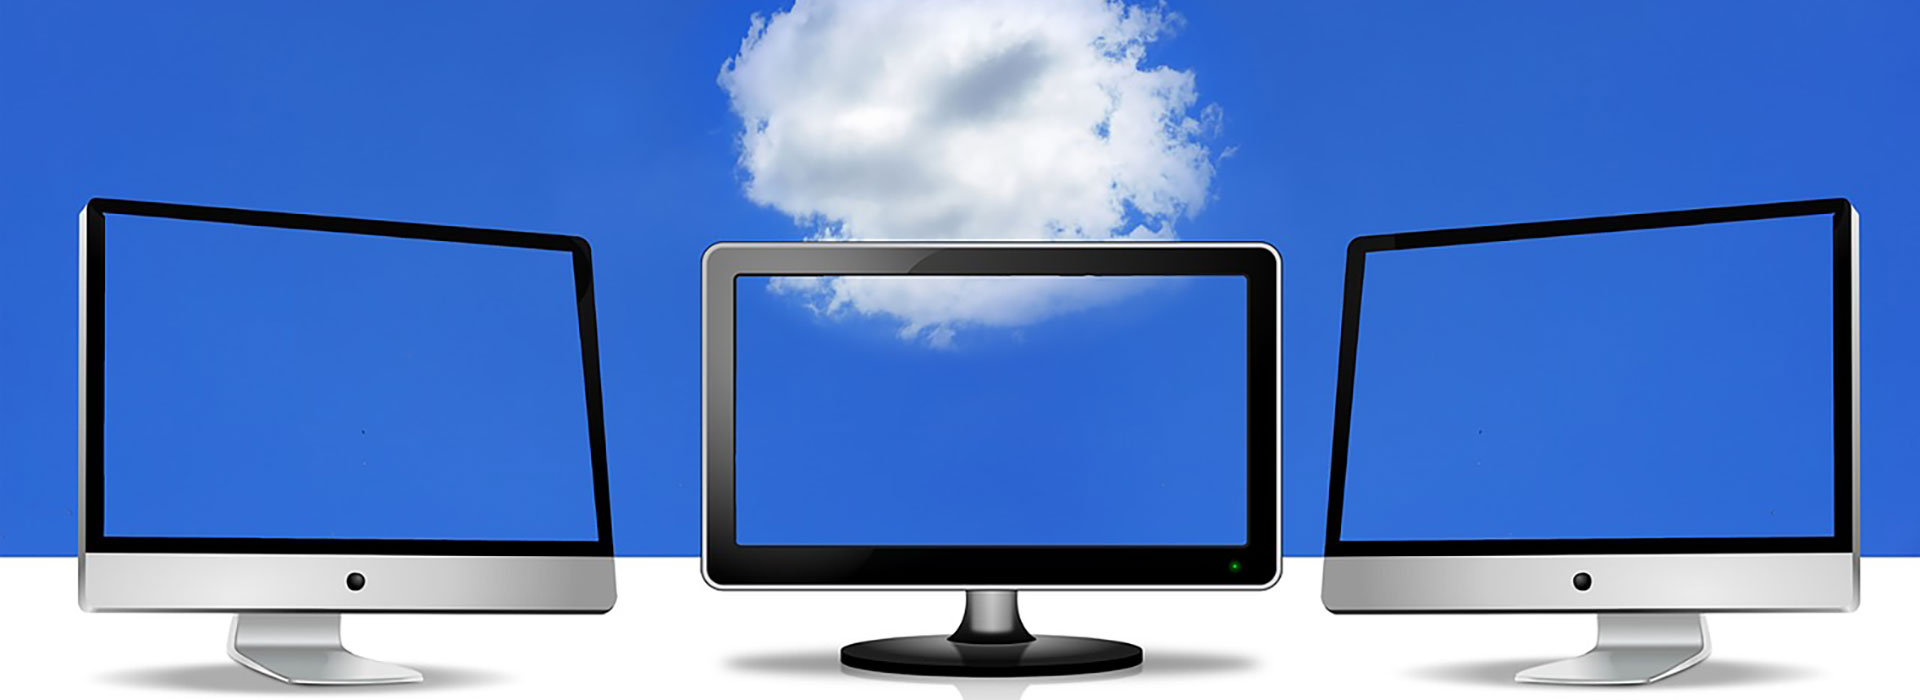 super fast web hosting solutions and packages